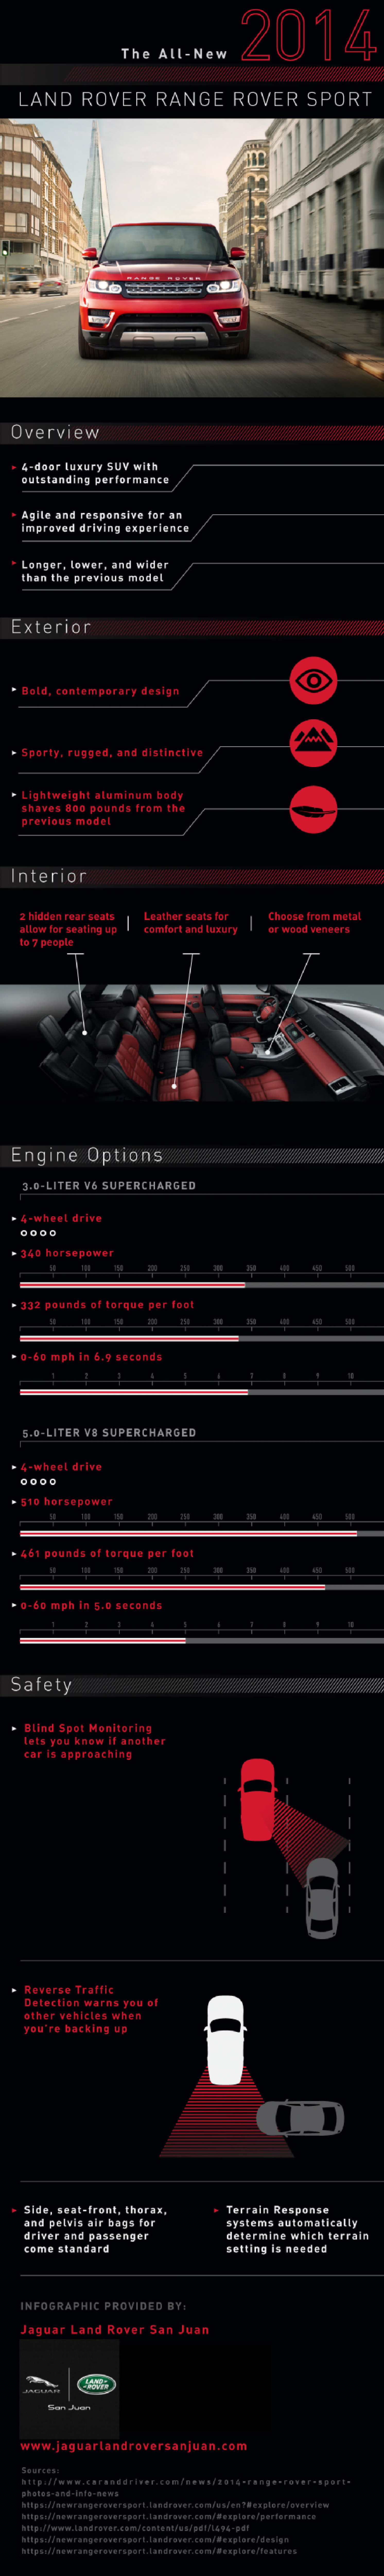 The All-New 2014 Land Rover Range Rover Sport Infographic